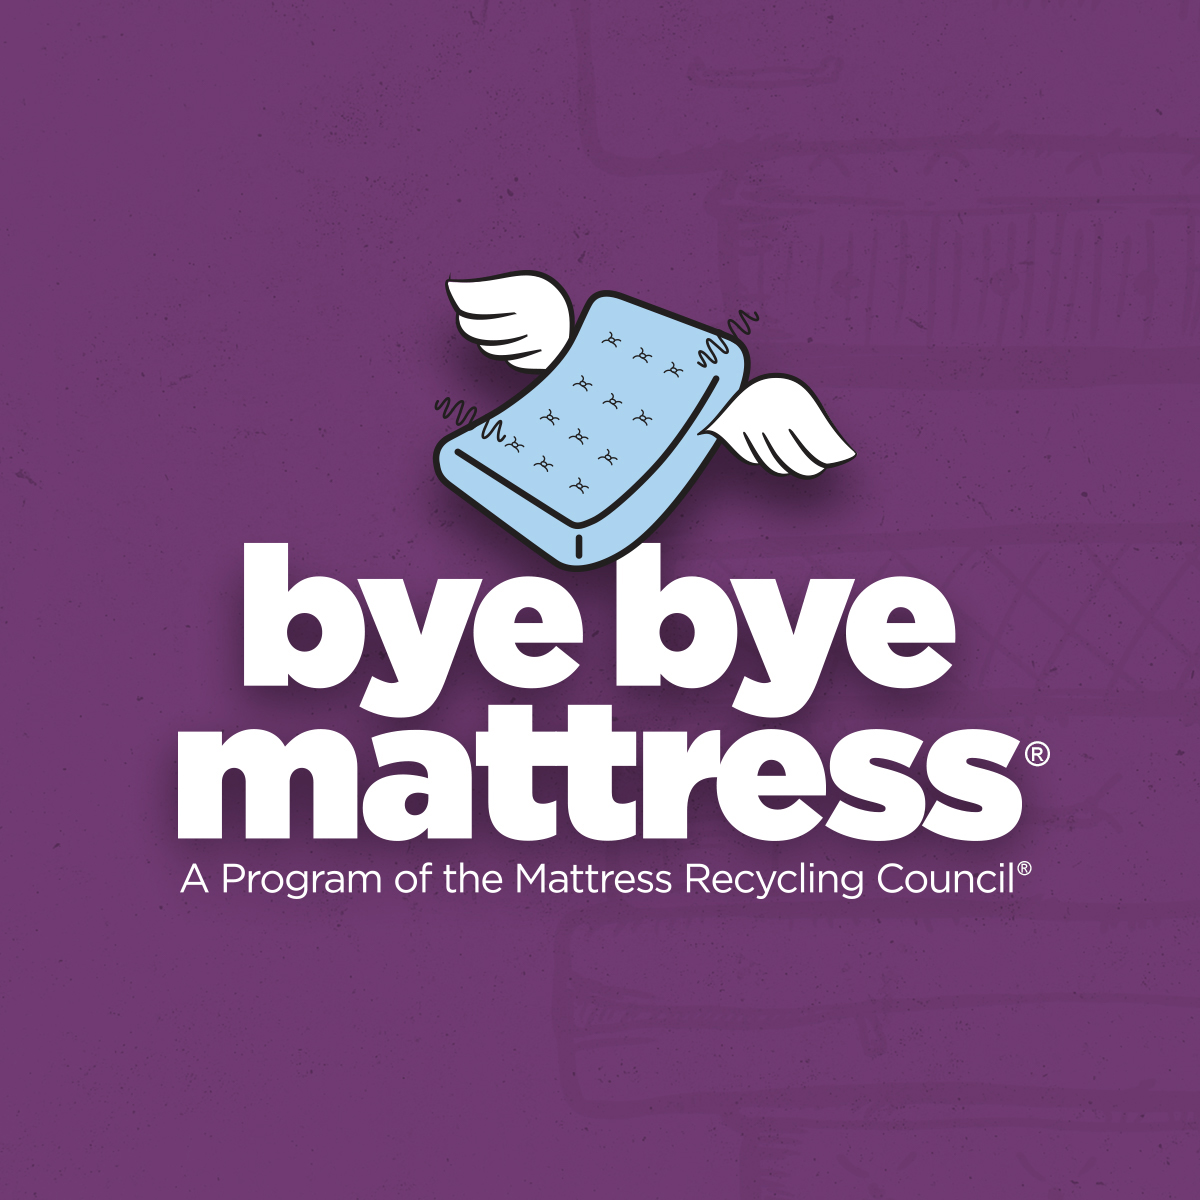 Delaware Green Mattress Disassembling & Recycling - Bye Bye Mattress | A Program of the Mattress Recycling Council